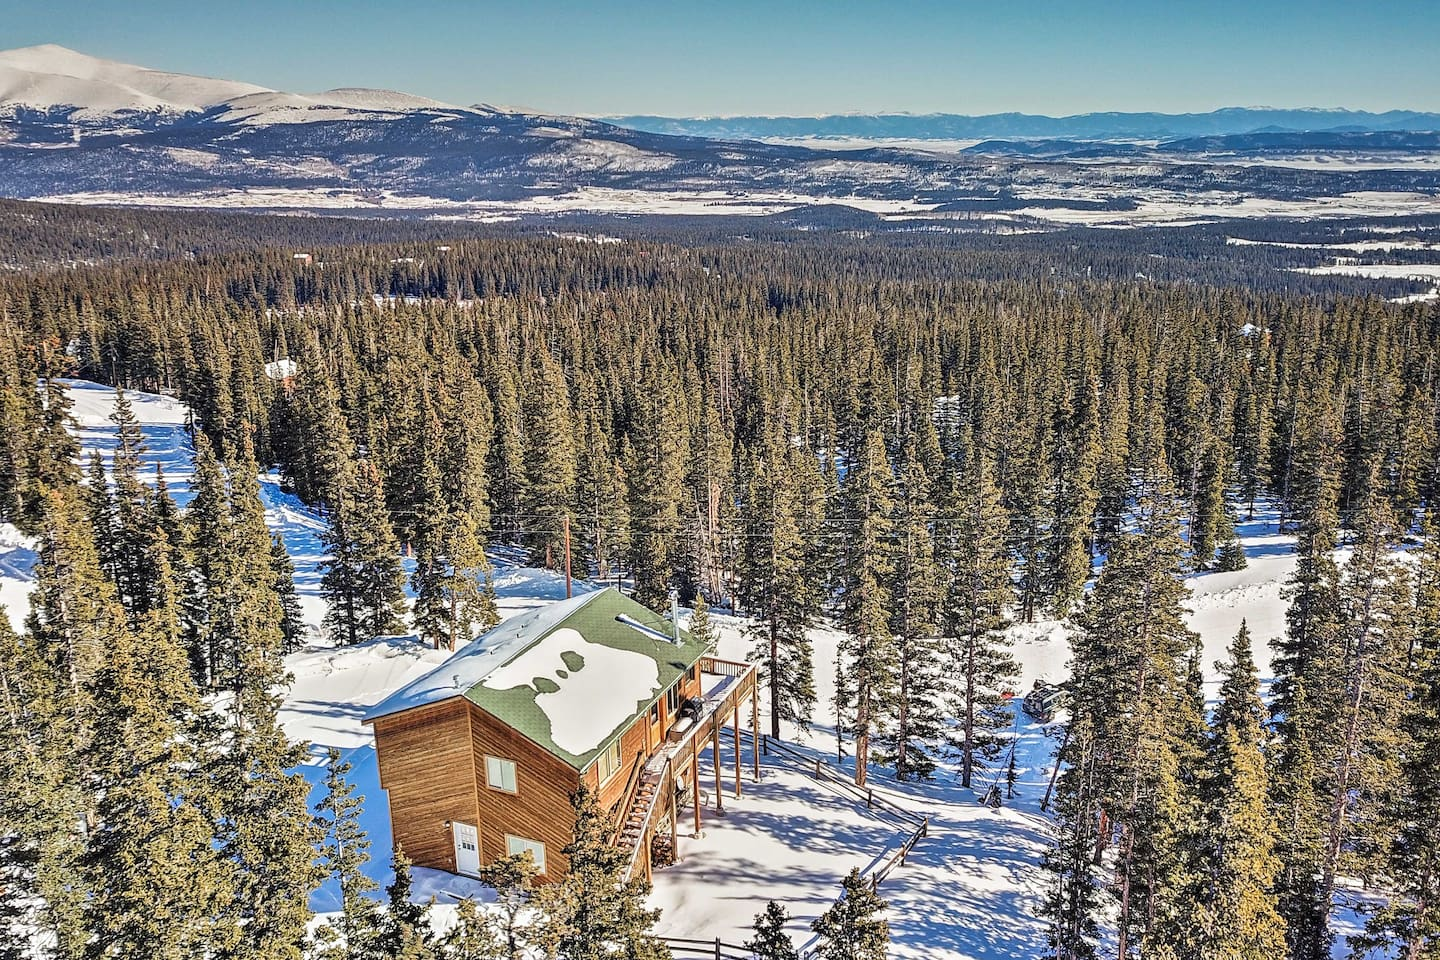 The views from this scenic and secluded Fiarplay cabin won't disappoint!